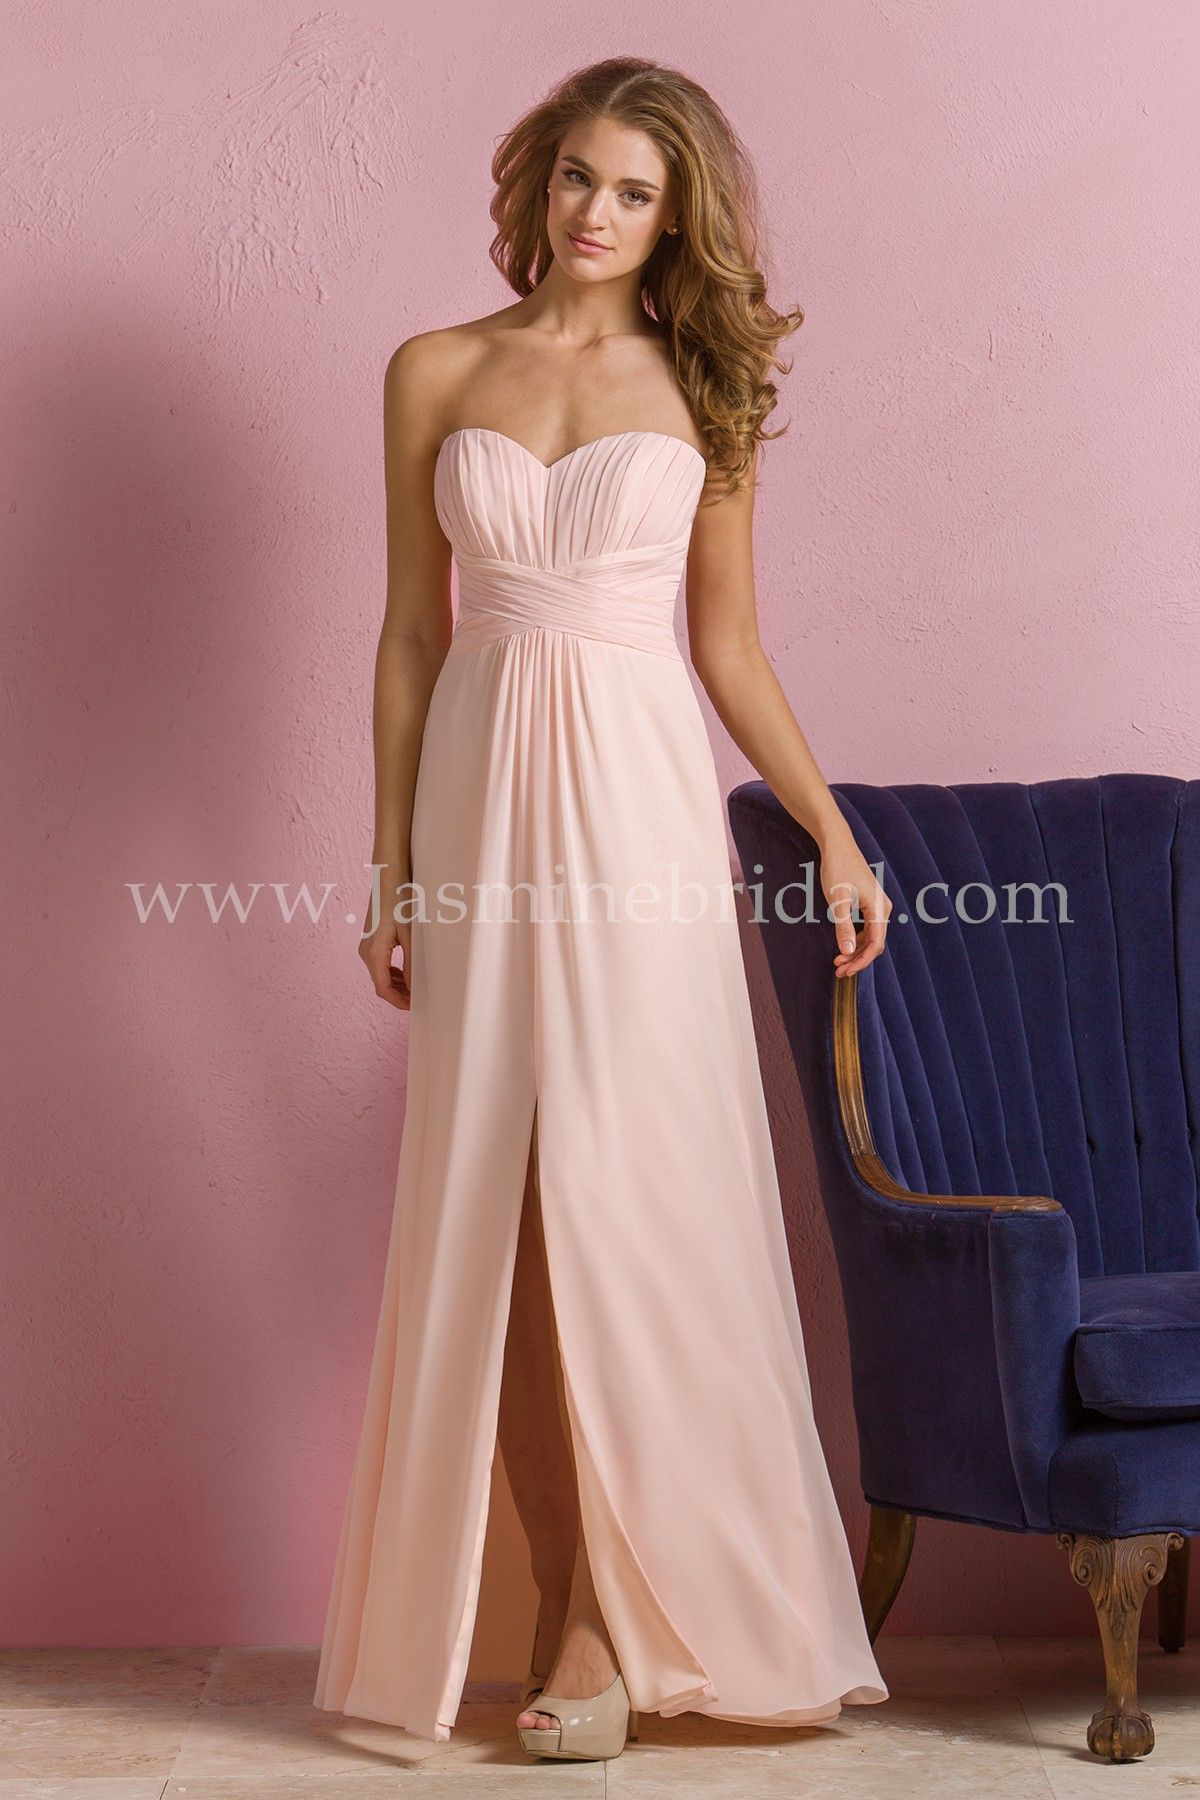 Jasmine bridal bridesmaid dress b2 style b173056 in dreamsicle fabric poly chiffon detail description fun and flirty this bridesmaid dress is a youthful and chic option made from poly chiffon this dress features a ombrellifo Choice Image